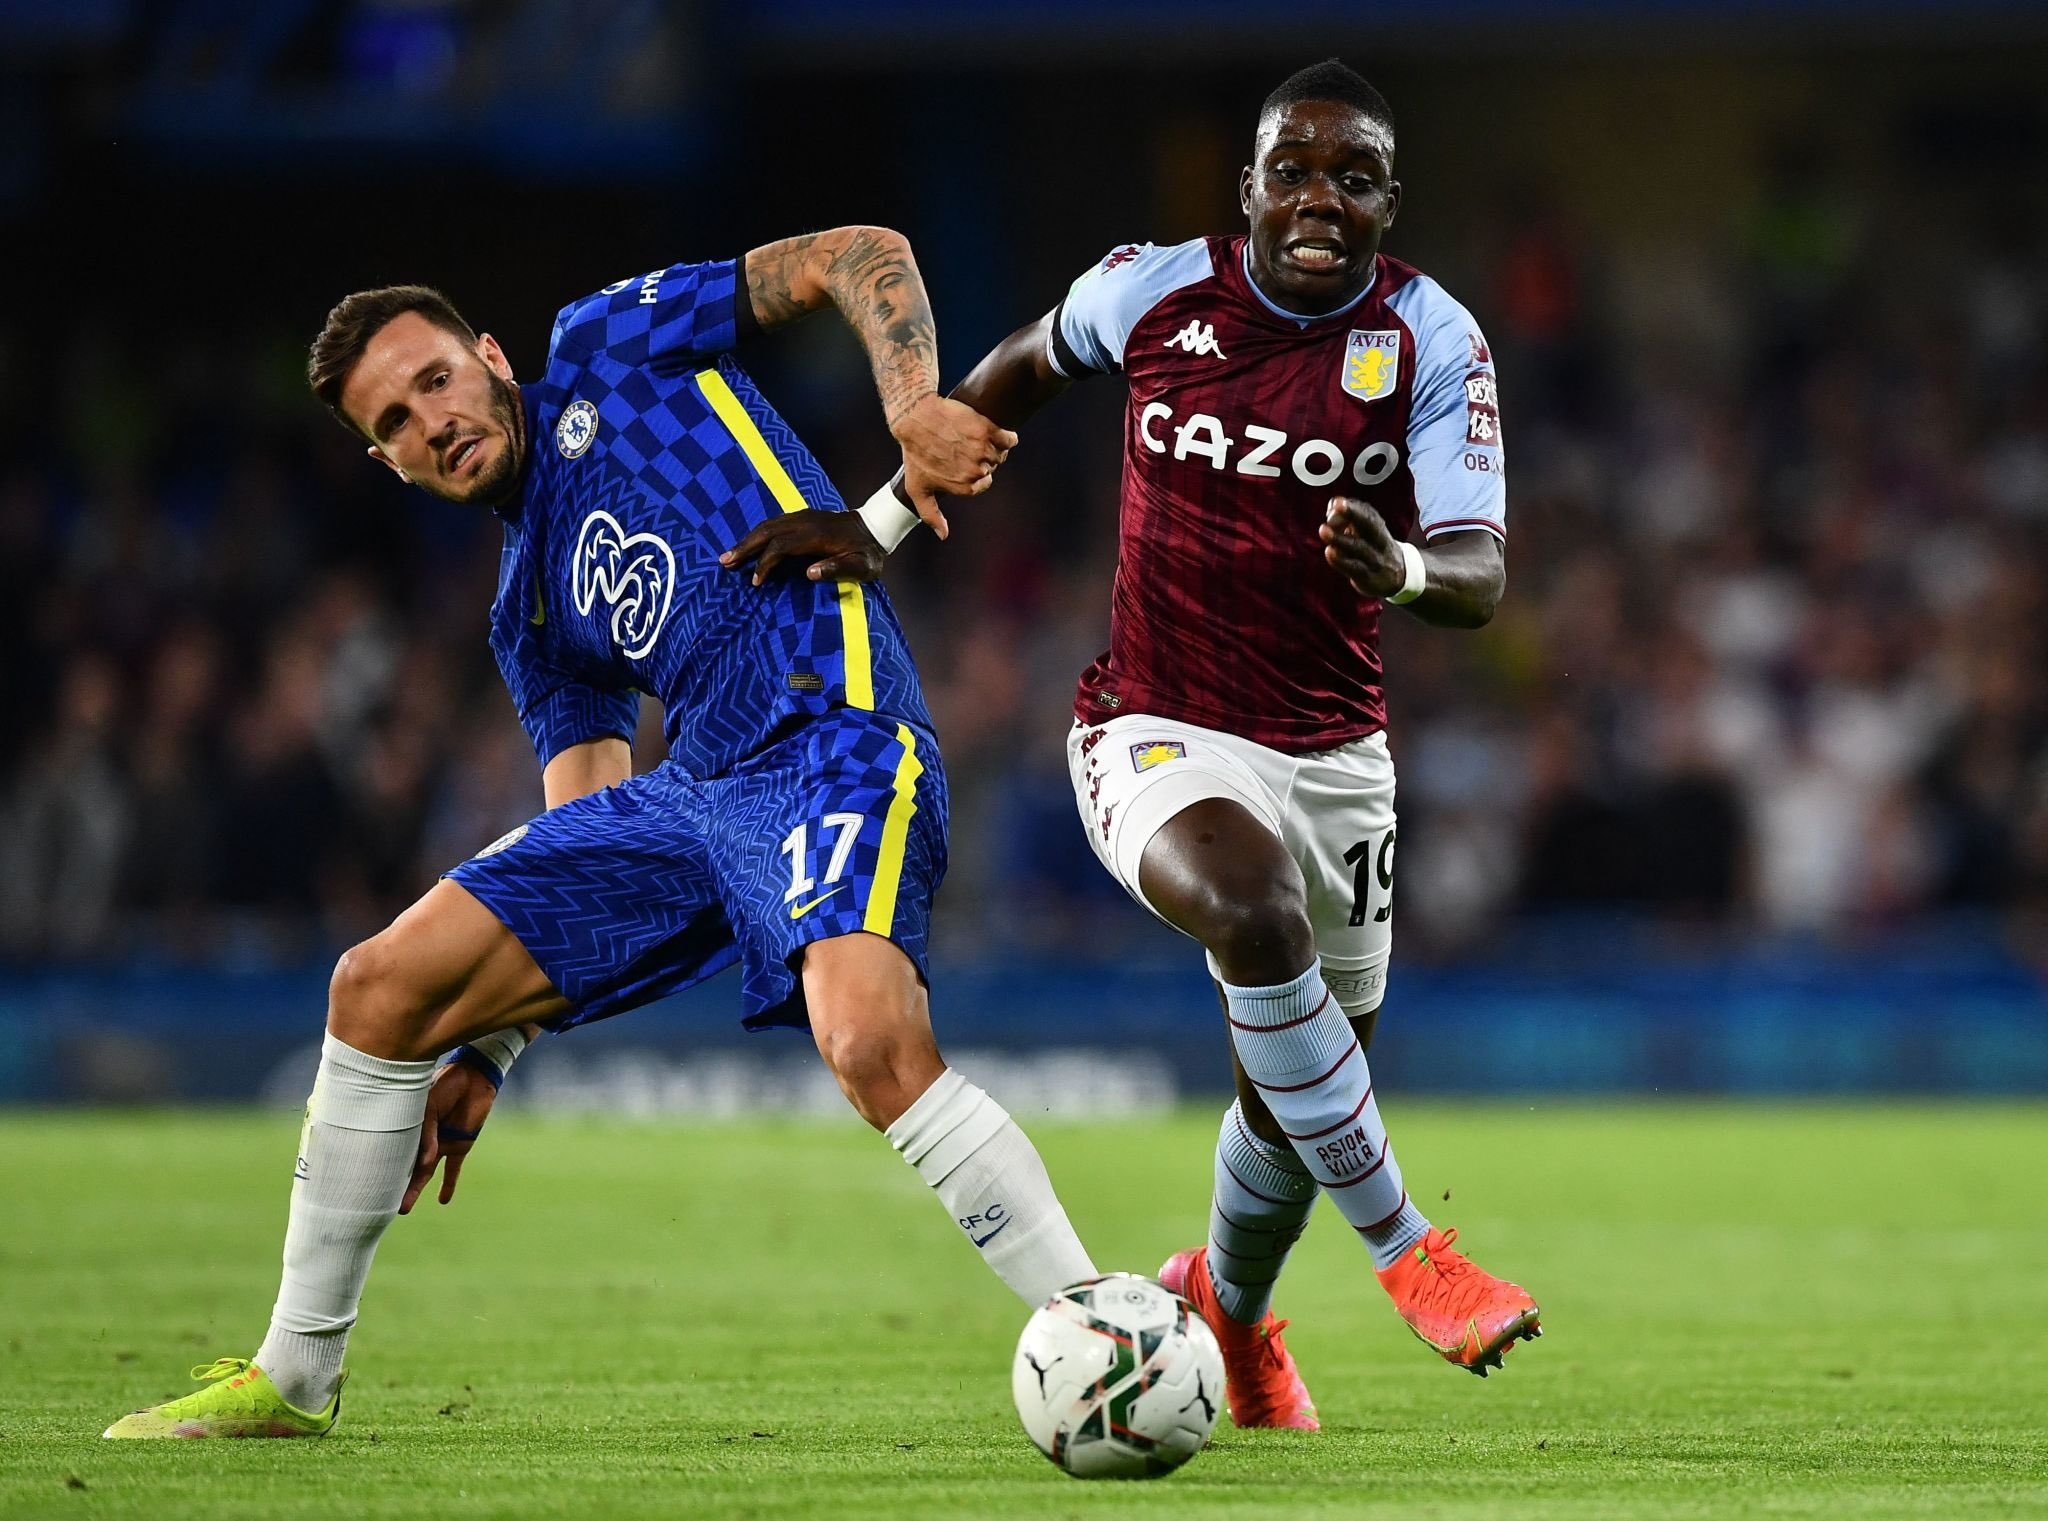 Heartbreak For Marvelous Nakamba: Aston Villa Star Apologises After Missing Penalty In Chelsea Defeat - iharare.com